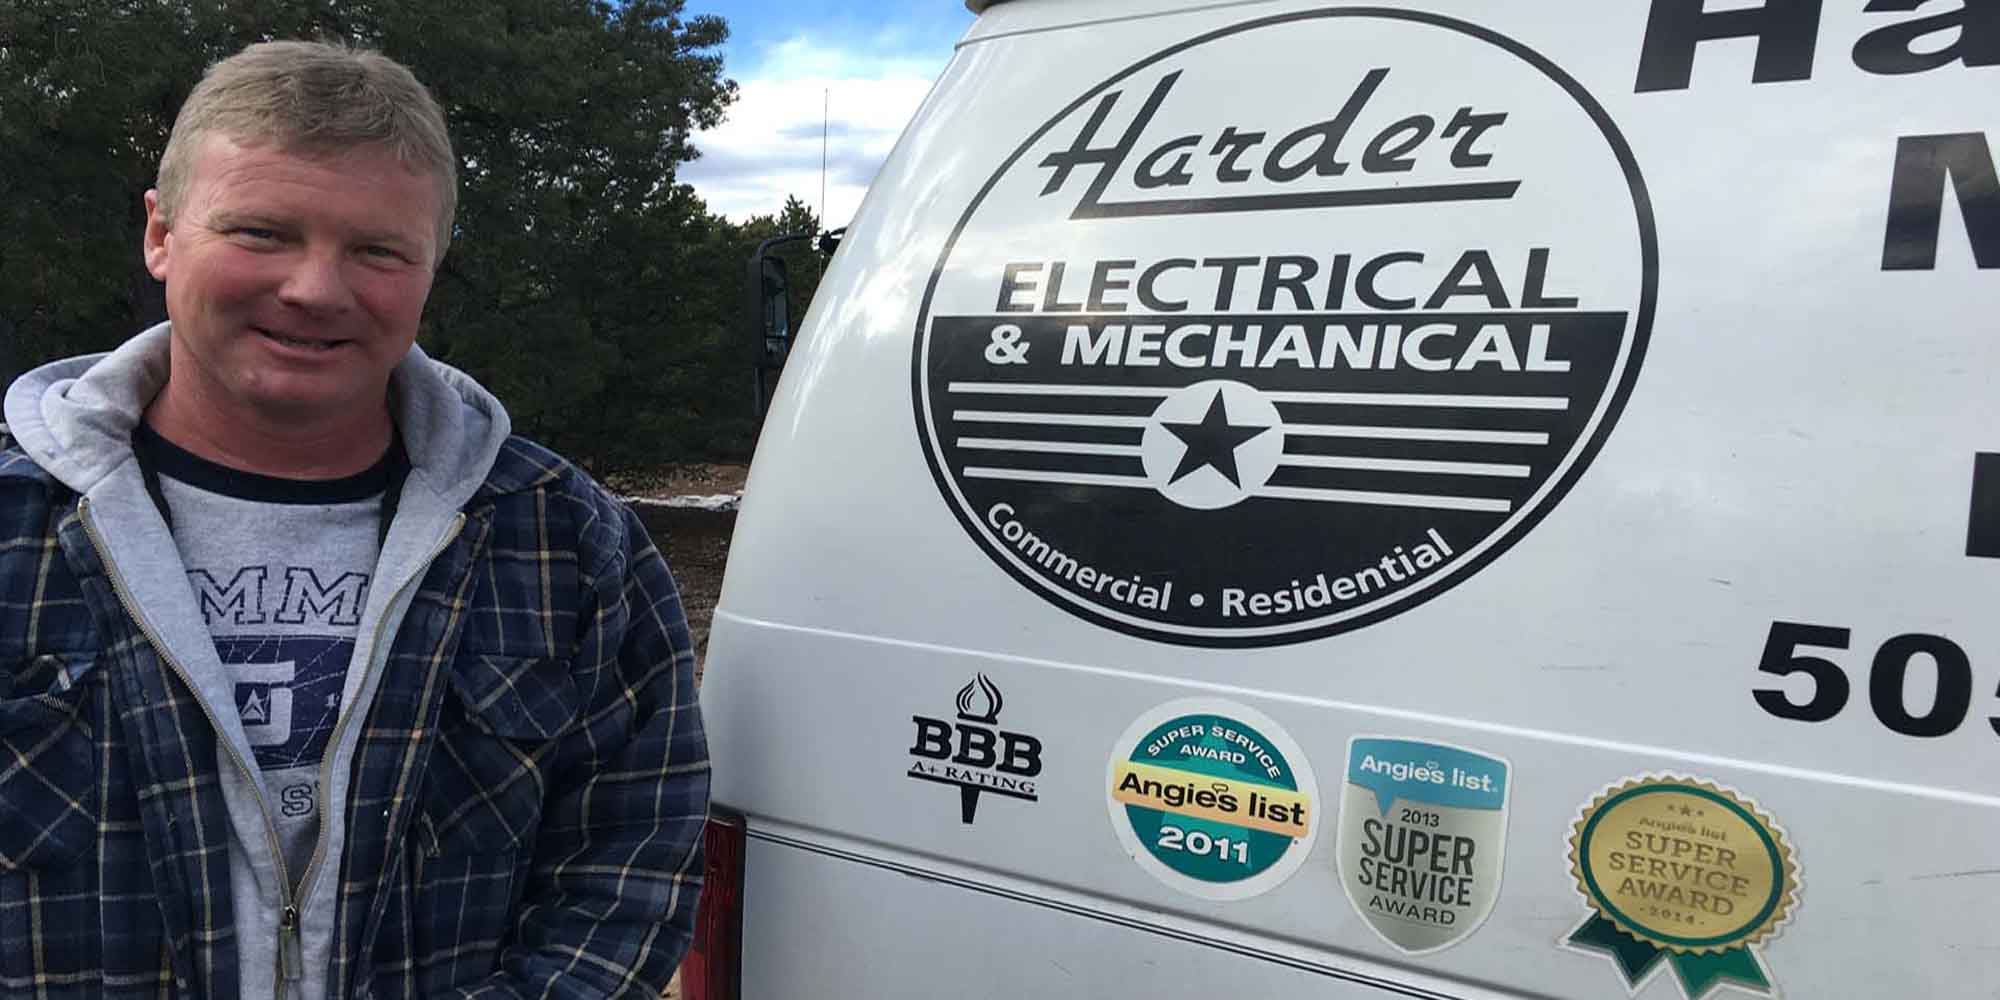 With Harder Electrical & Mechanical, you can always expect a friendly face